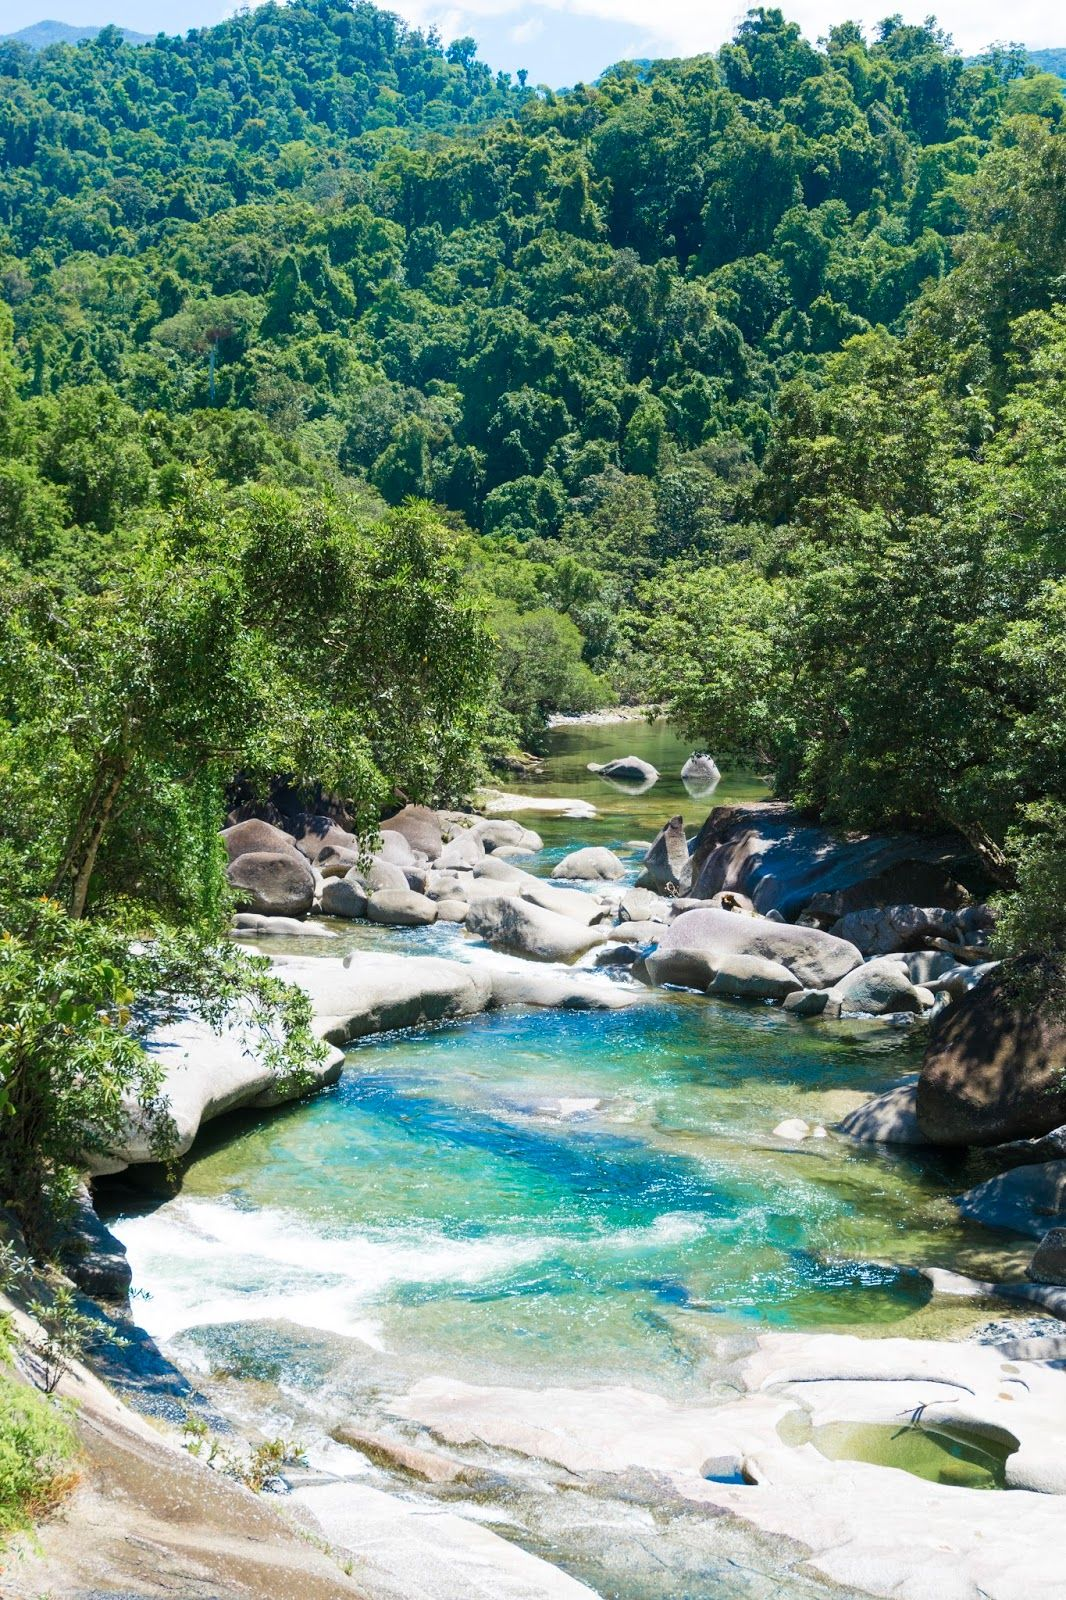 The Babinda Boulders Queensland S Hidden Gem Visit Australia Australia Tourism Australia Travel